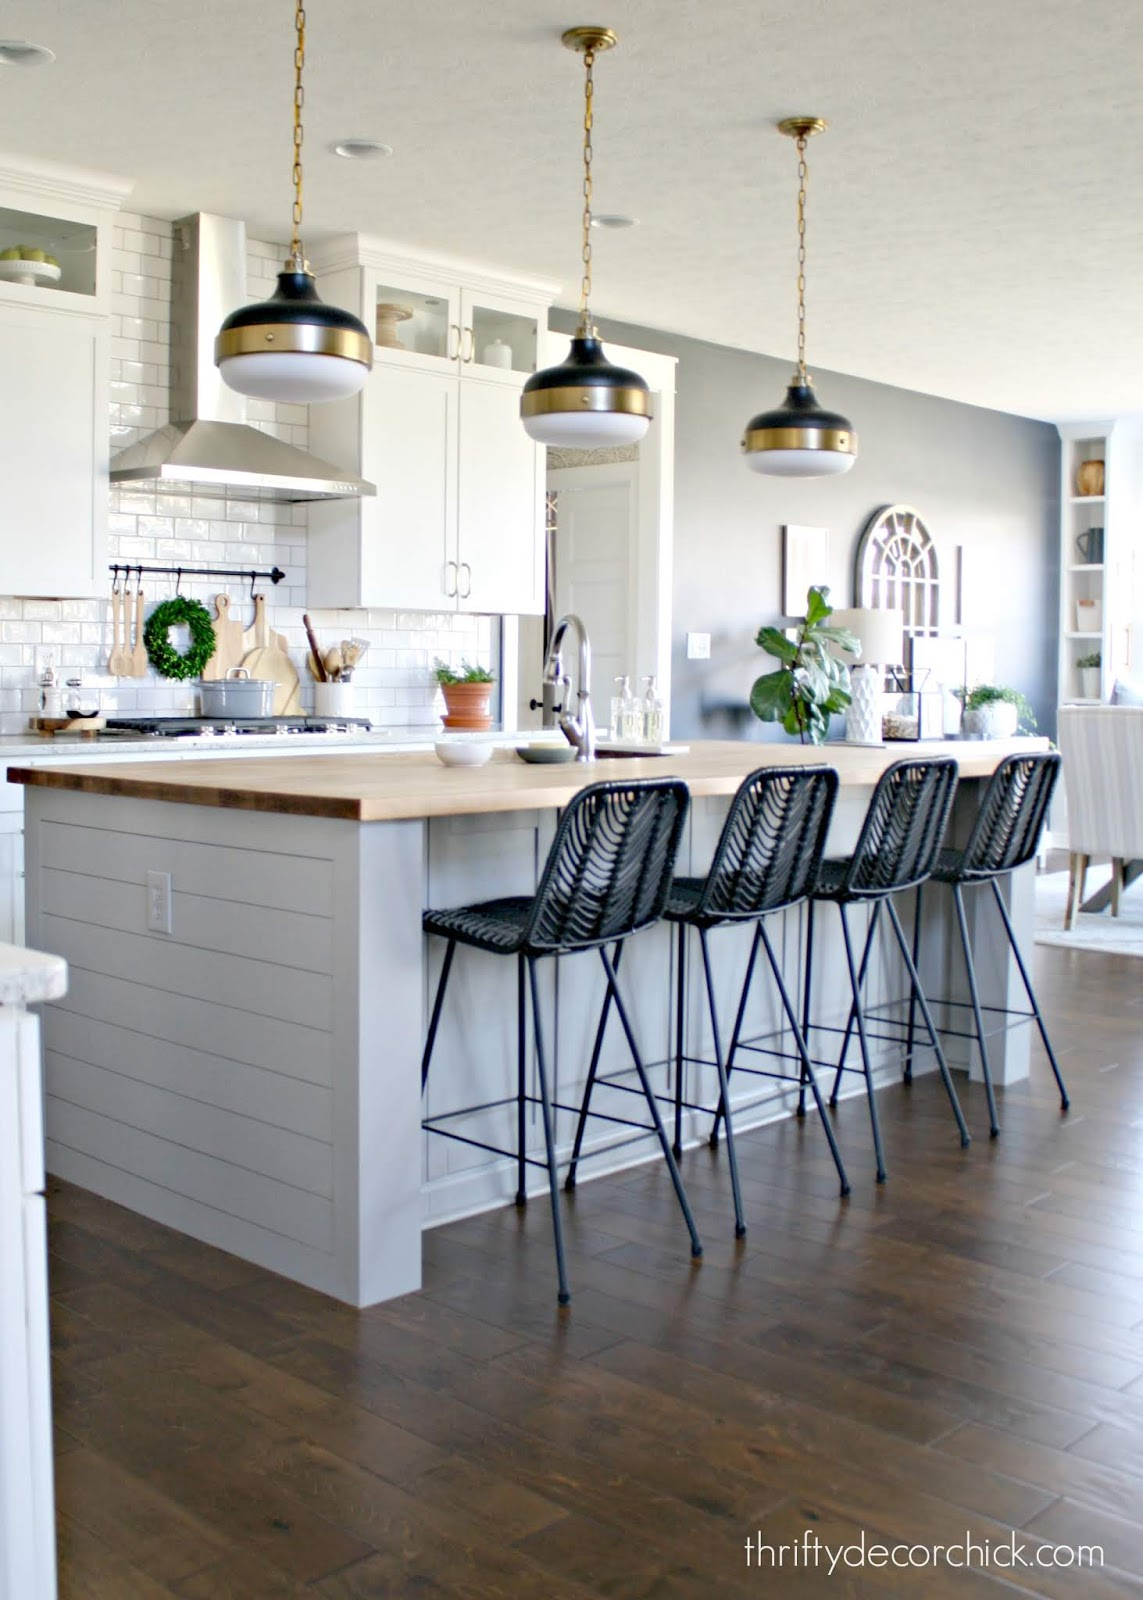 Adding side panel with shiplap to kitchen island